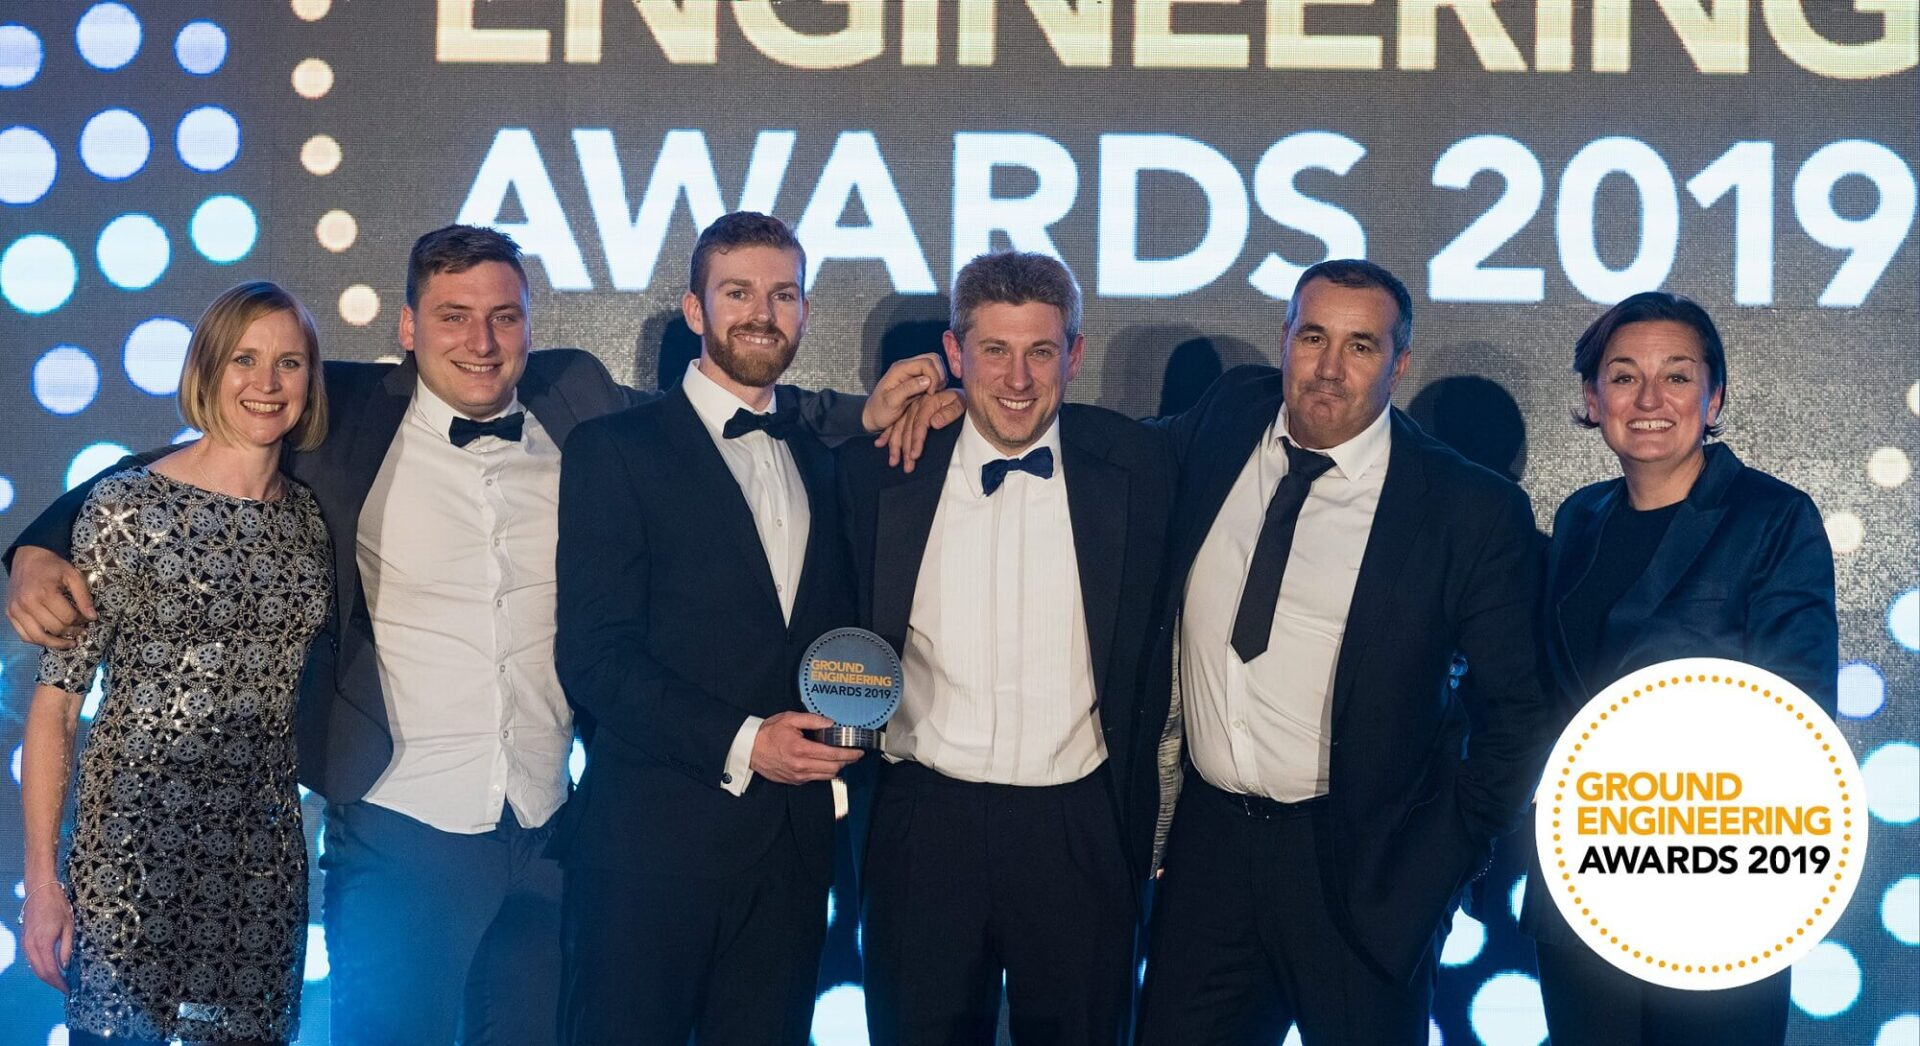 Insights - Thames Tideway Tunnel Team Wins Coveted Ground Engineering Award - Tideway Collecting Award (2)